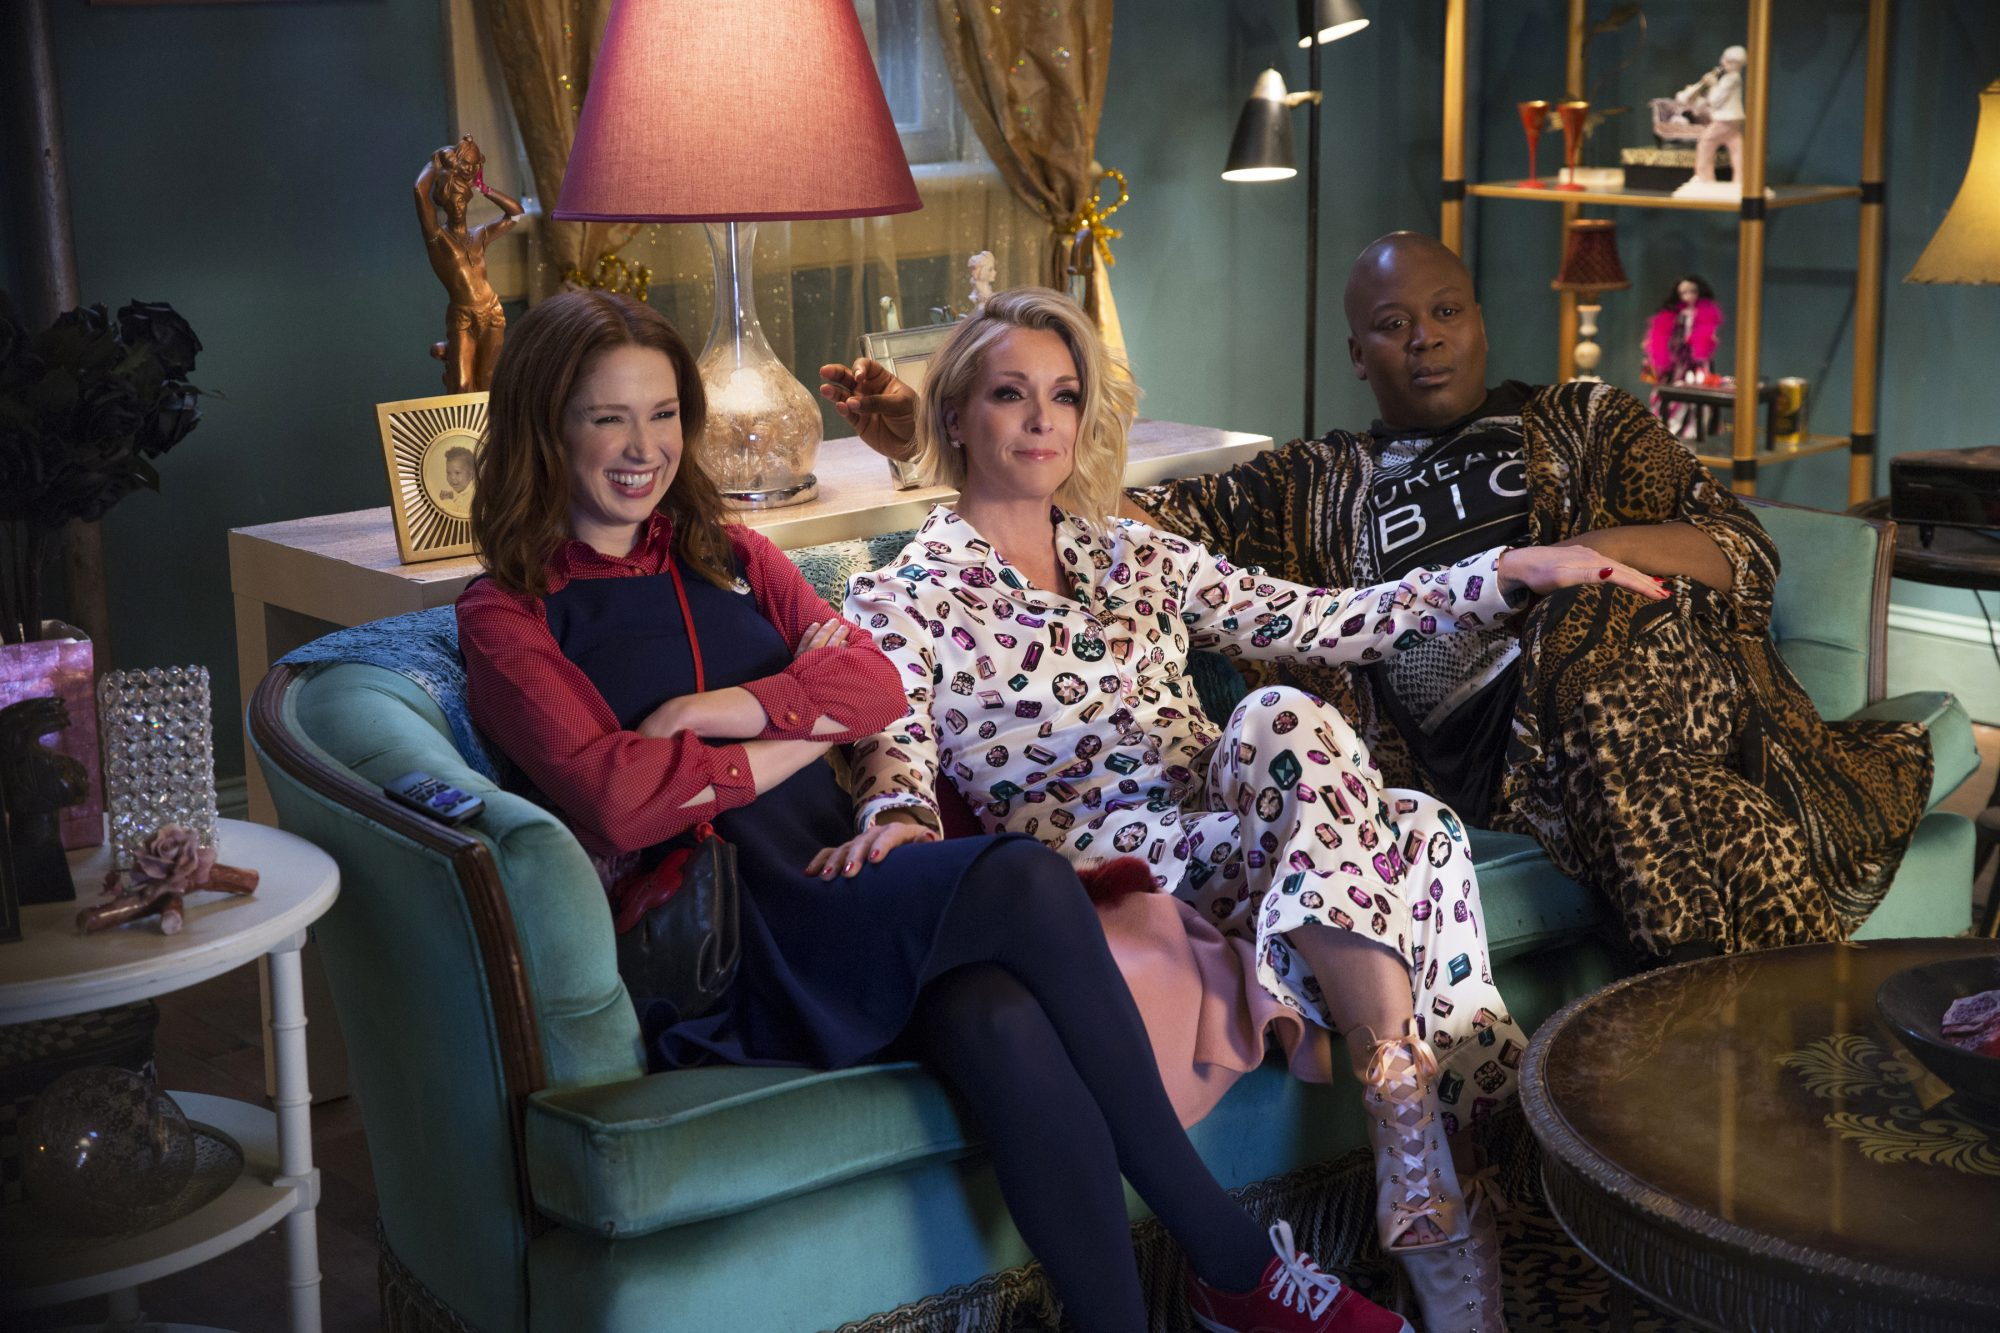 Unbreakable Kimmy Schmidt (Netflix, Jan. 25)